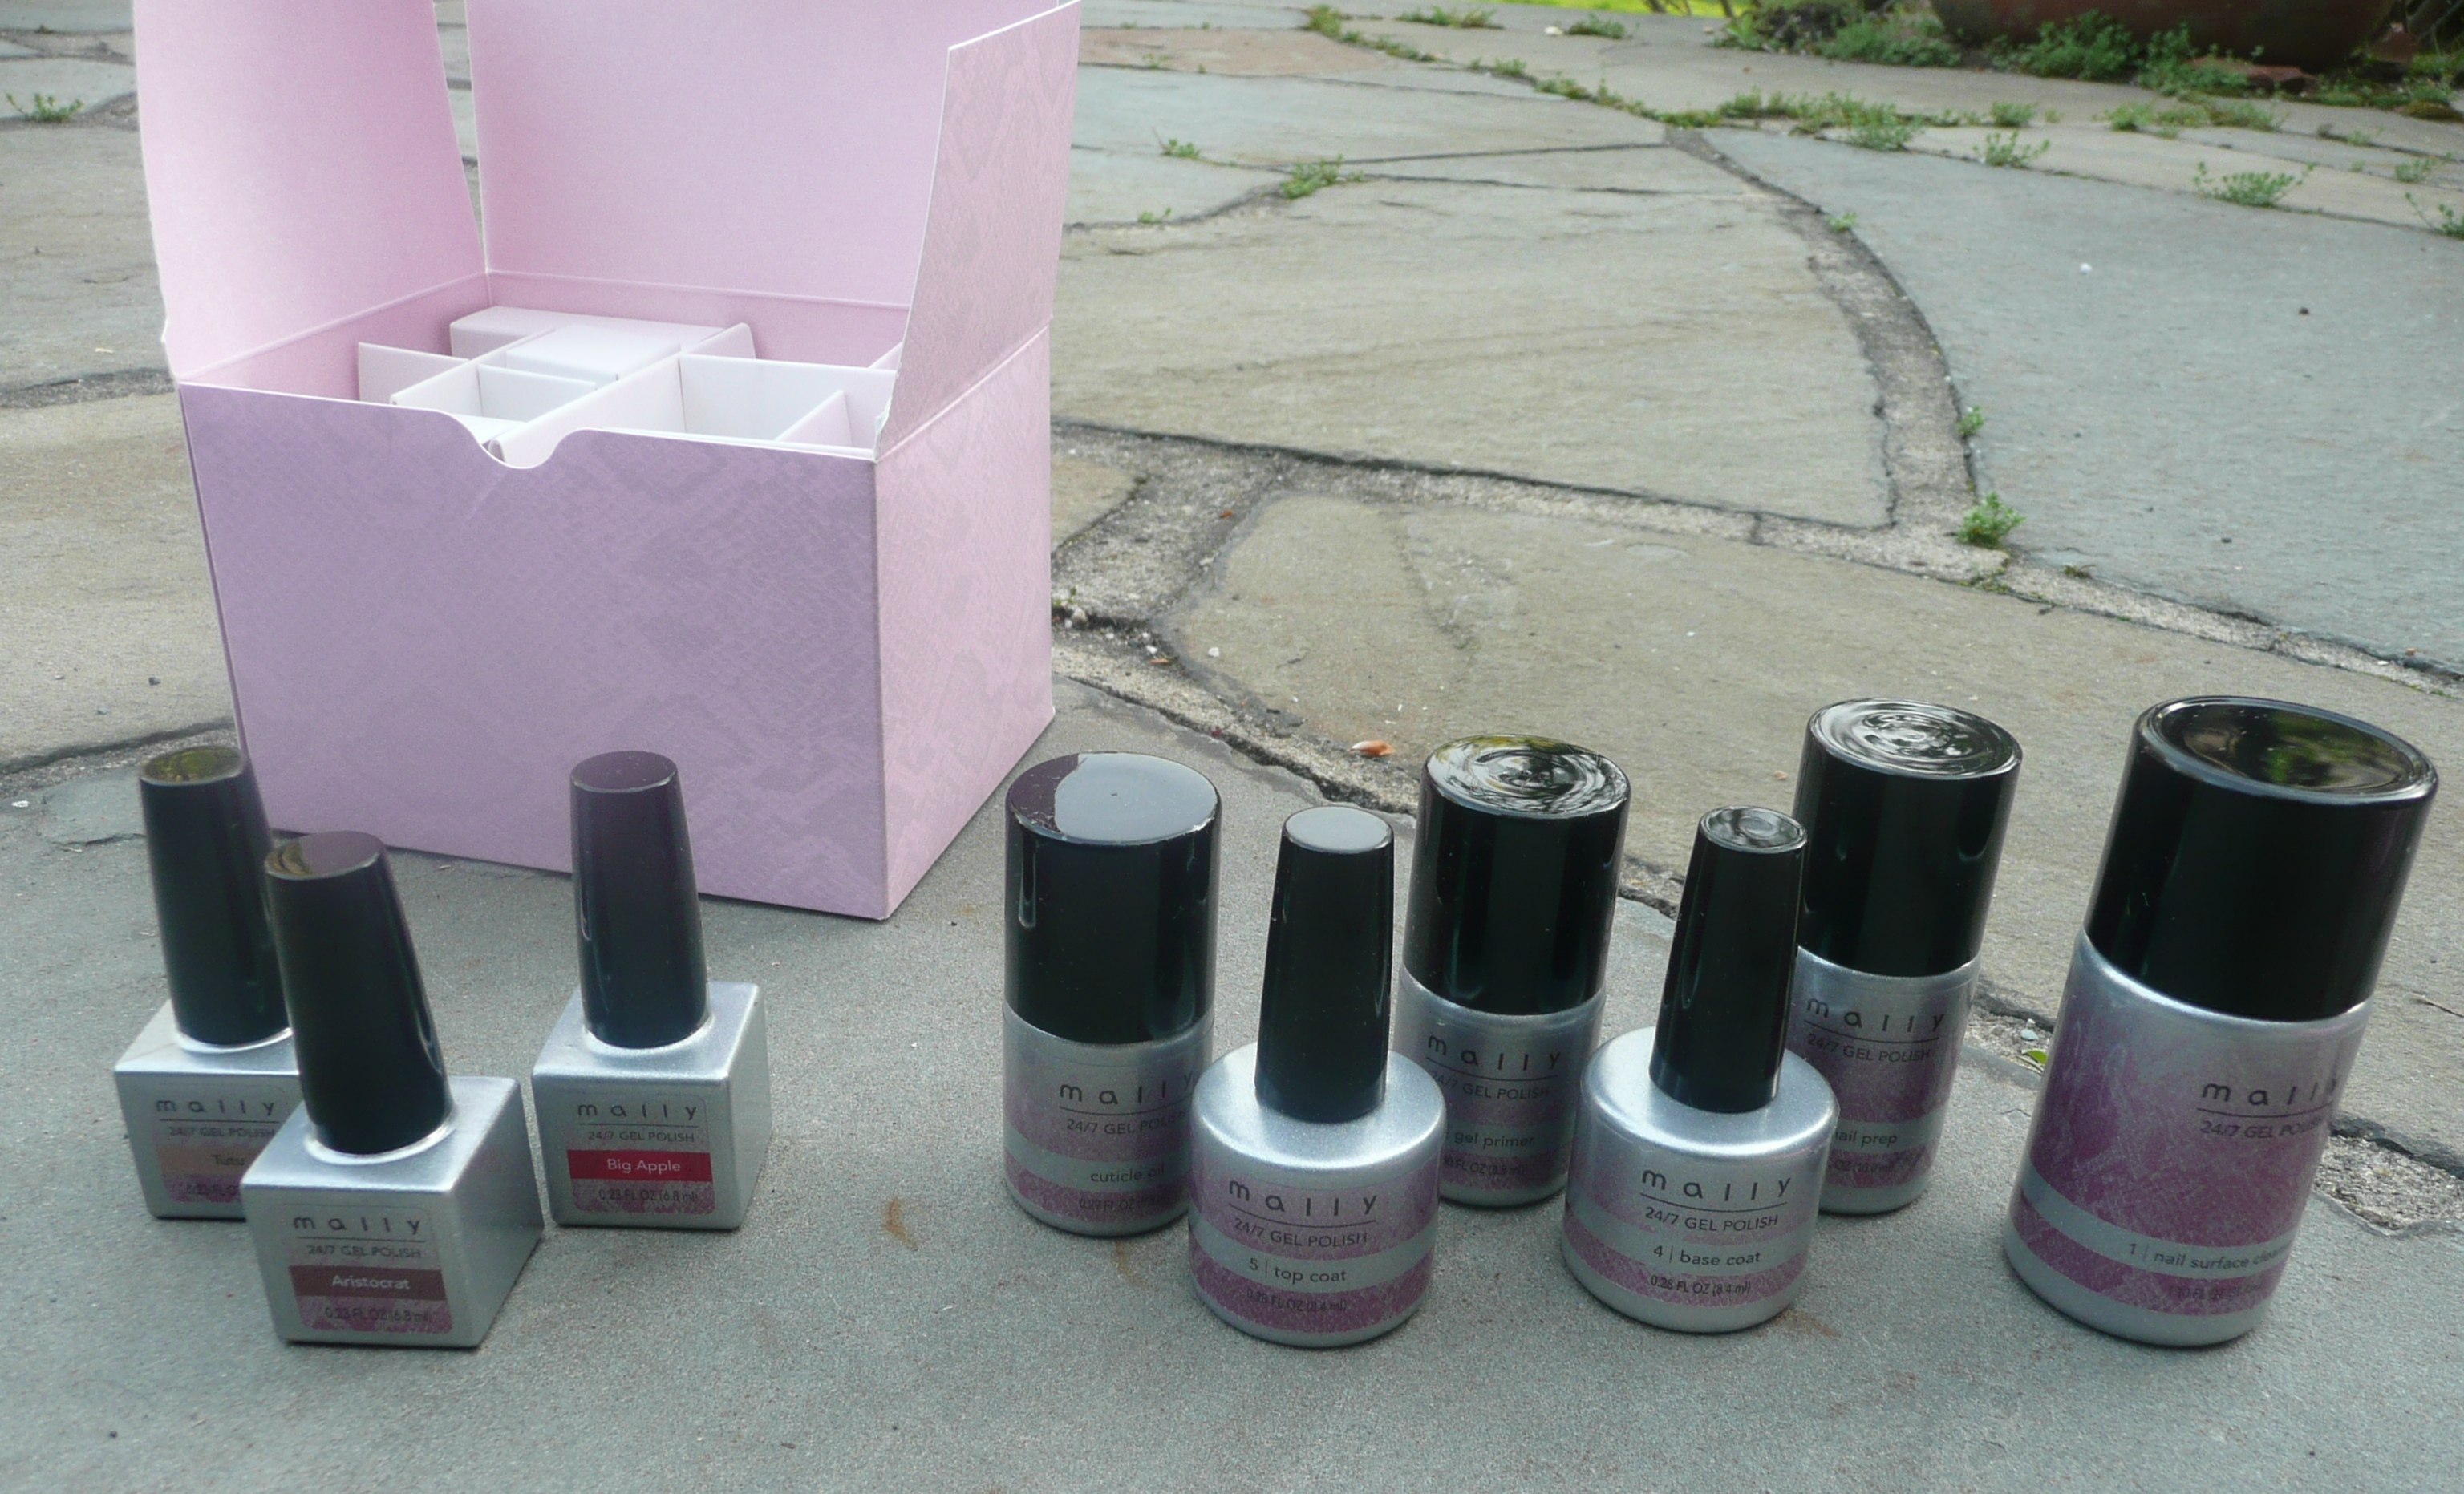 Unboxing: Mally 24/7 16 Piece Gel Nail System | The Girly Girl